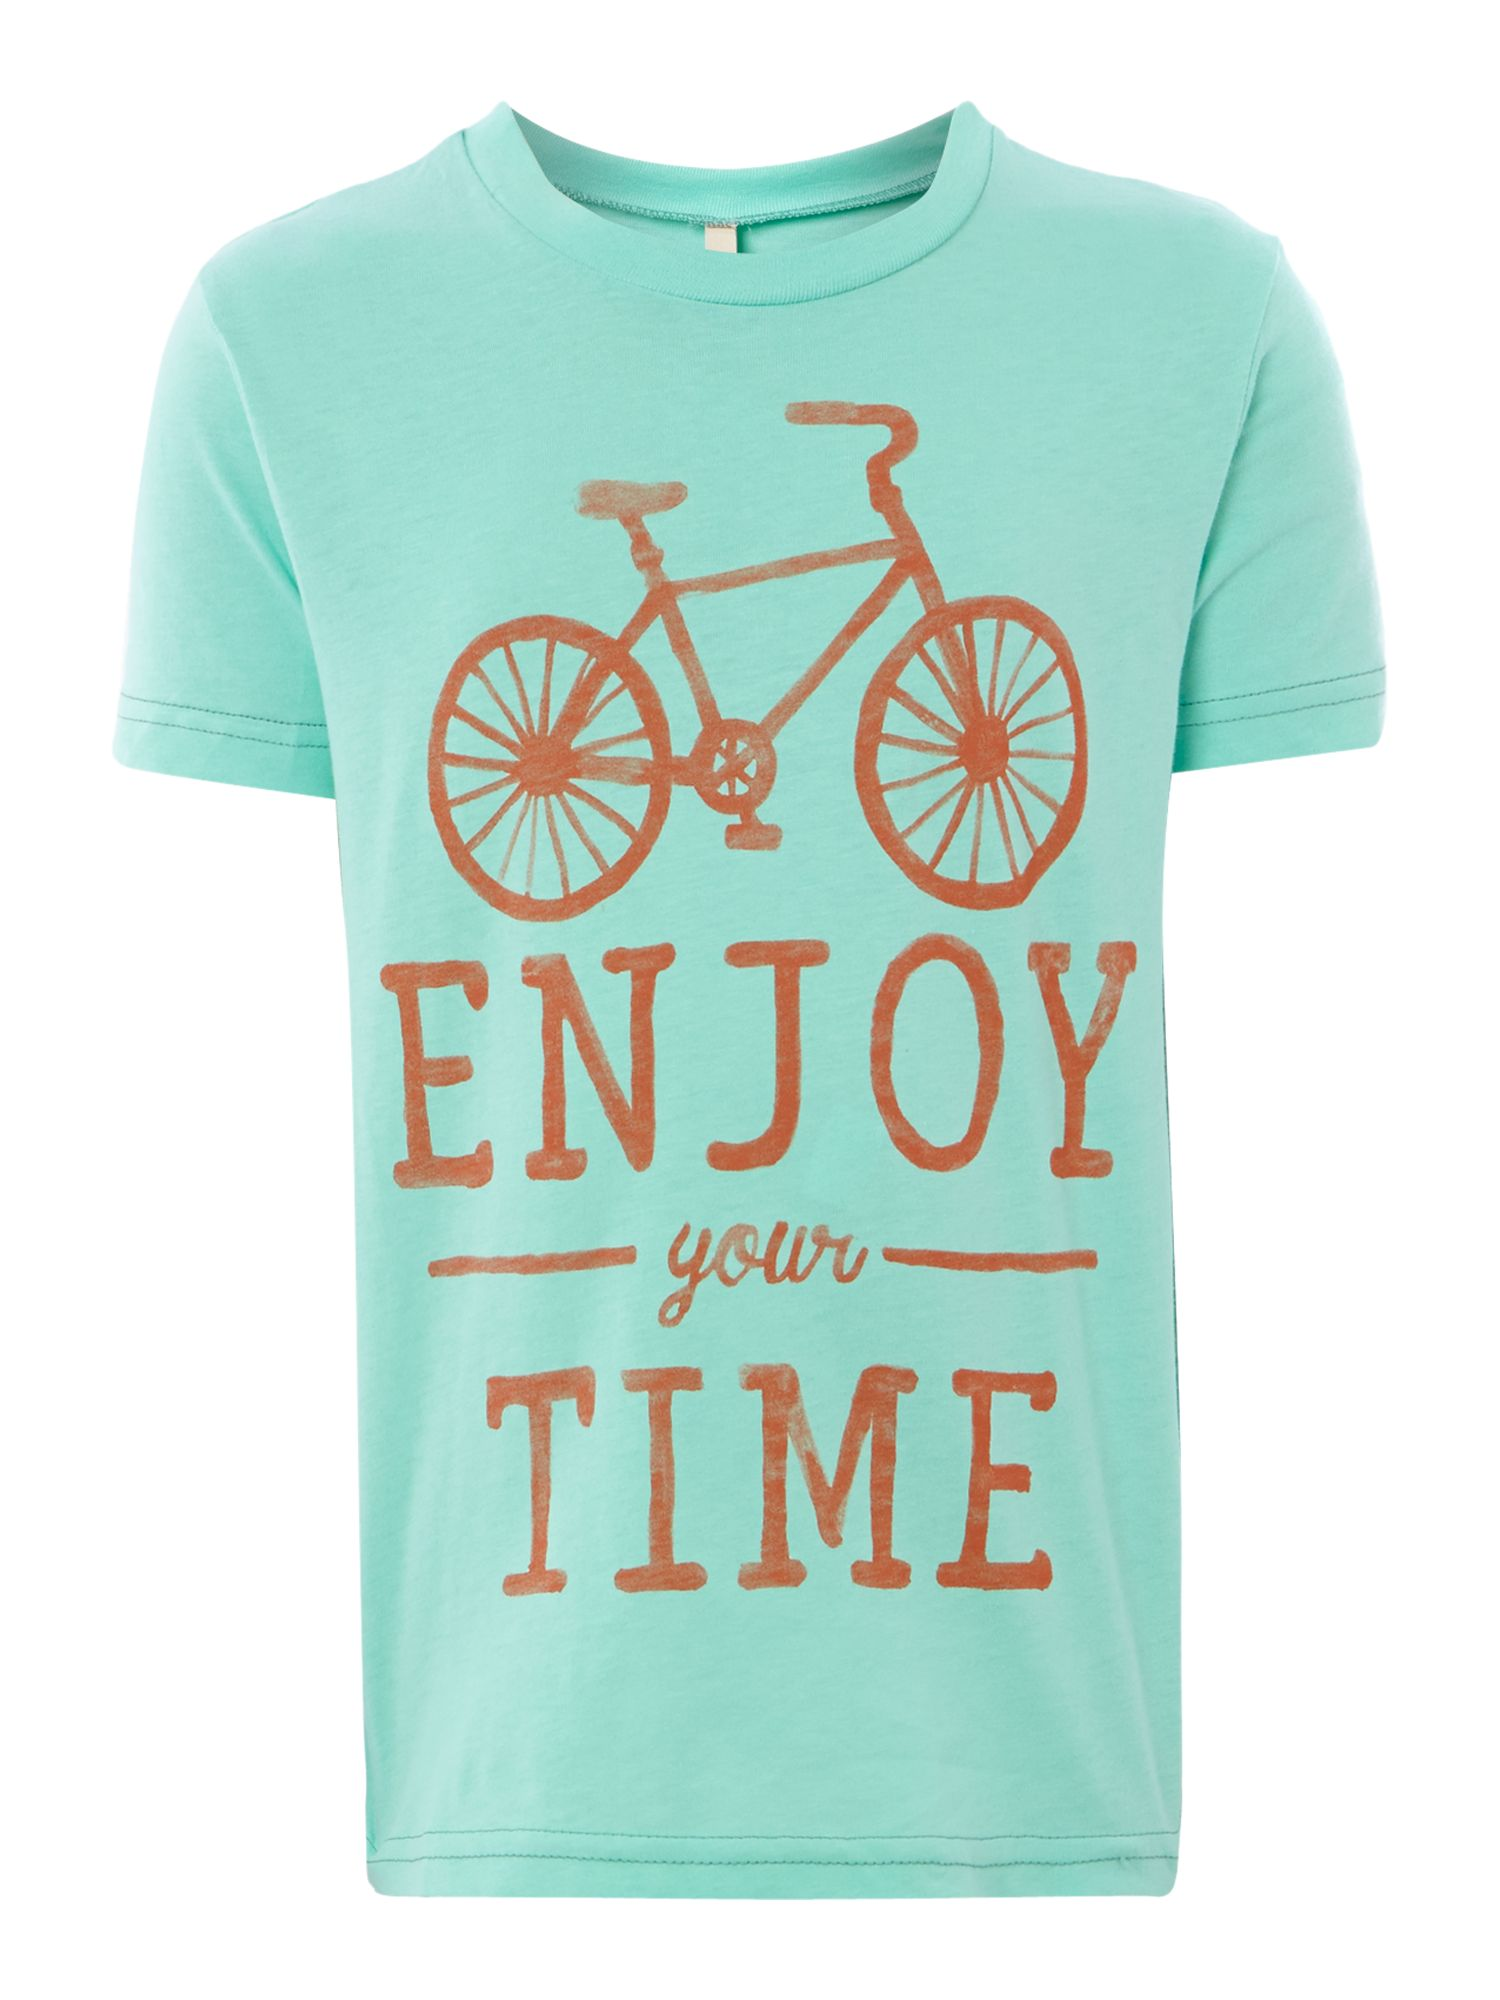 Boys bicycle print t-shirt